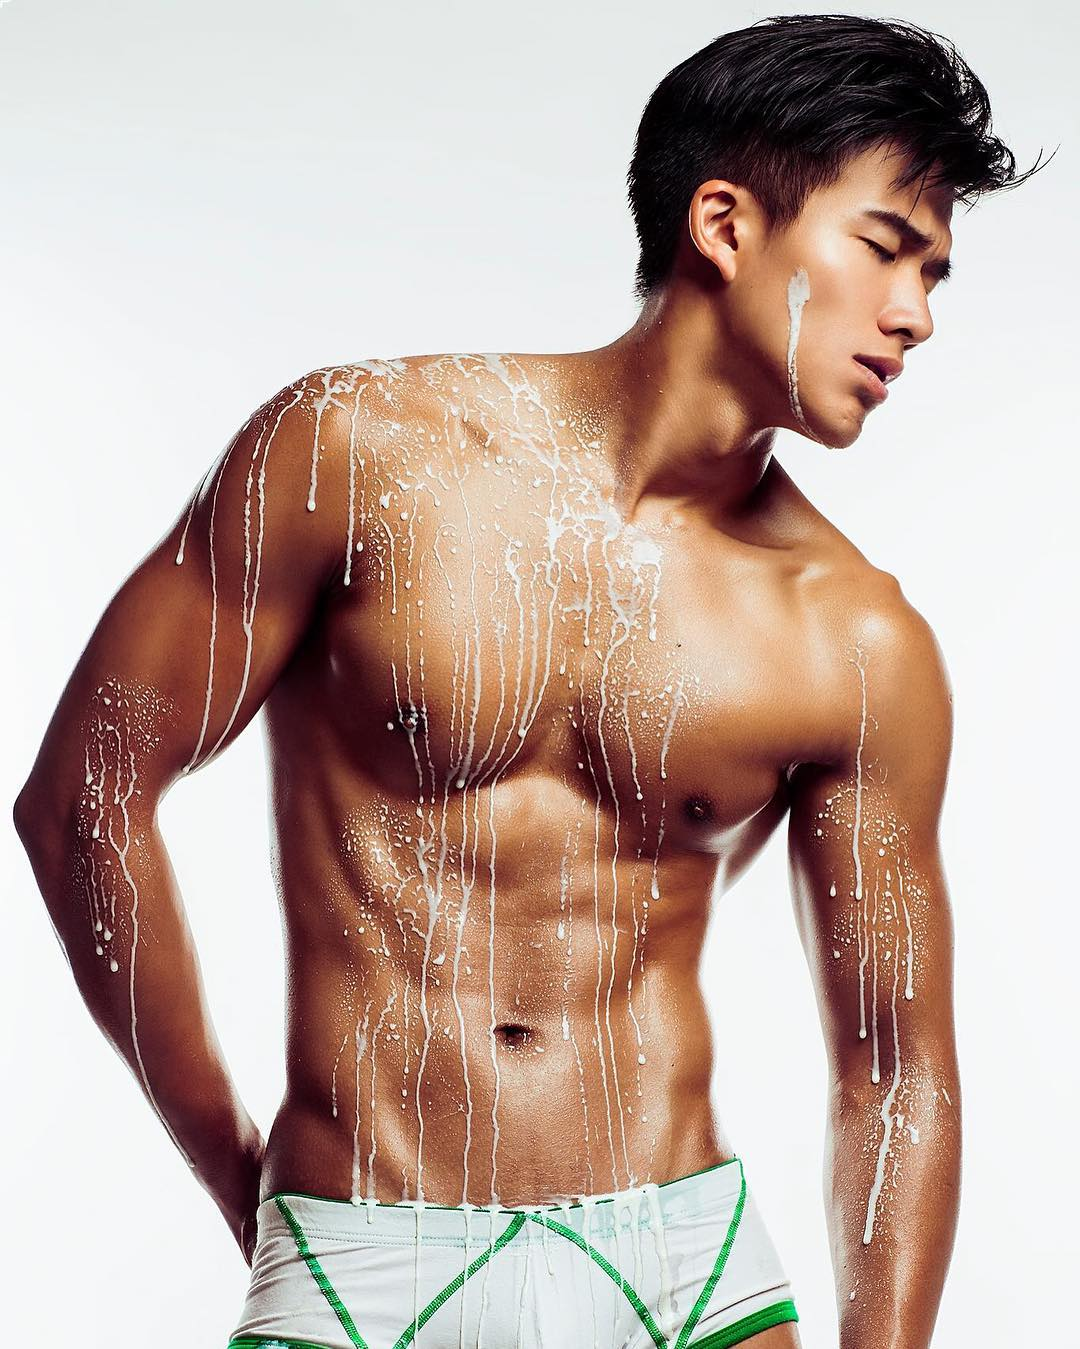 white-party-bangkok-asia-biggest-new-year-gay-party-hot-asian-guys-asias-largest-gay-travel-guide-3